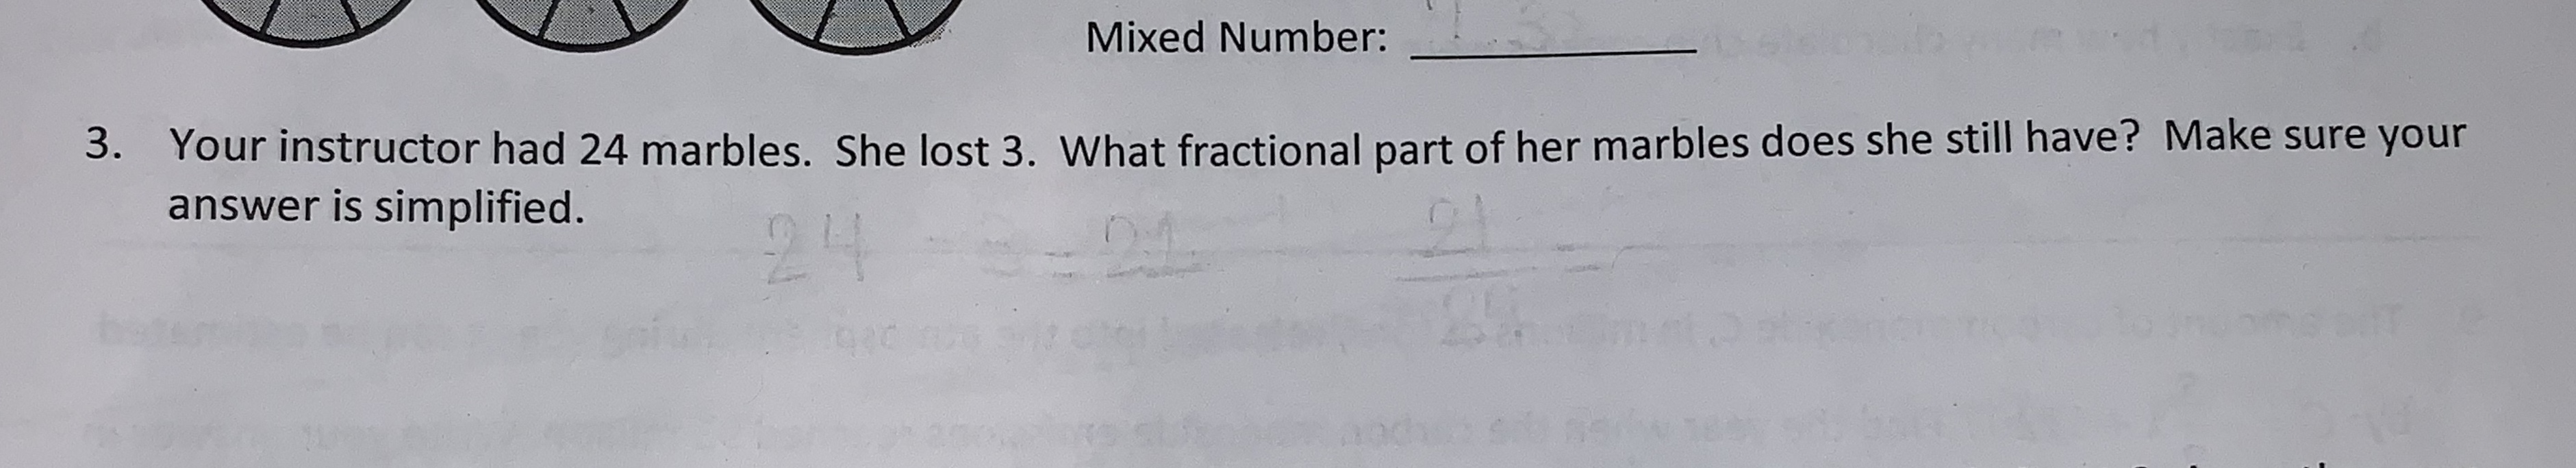 Mixed Number: Your instructor had 24 marbles. She lost 3. What fractional part of her marbles does she still have? Make answer is simplified. 3. 24 24 cte st CN